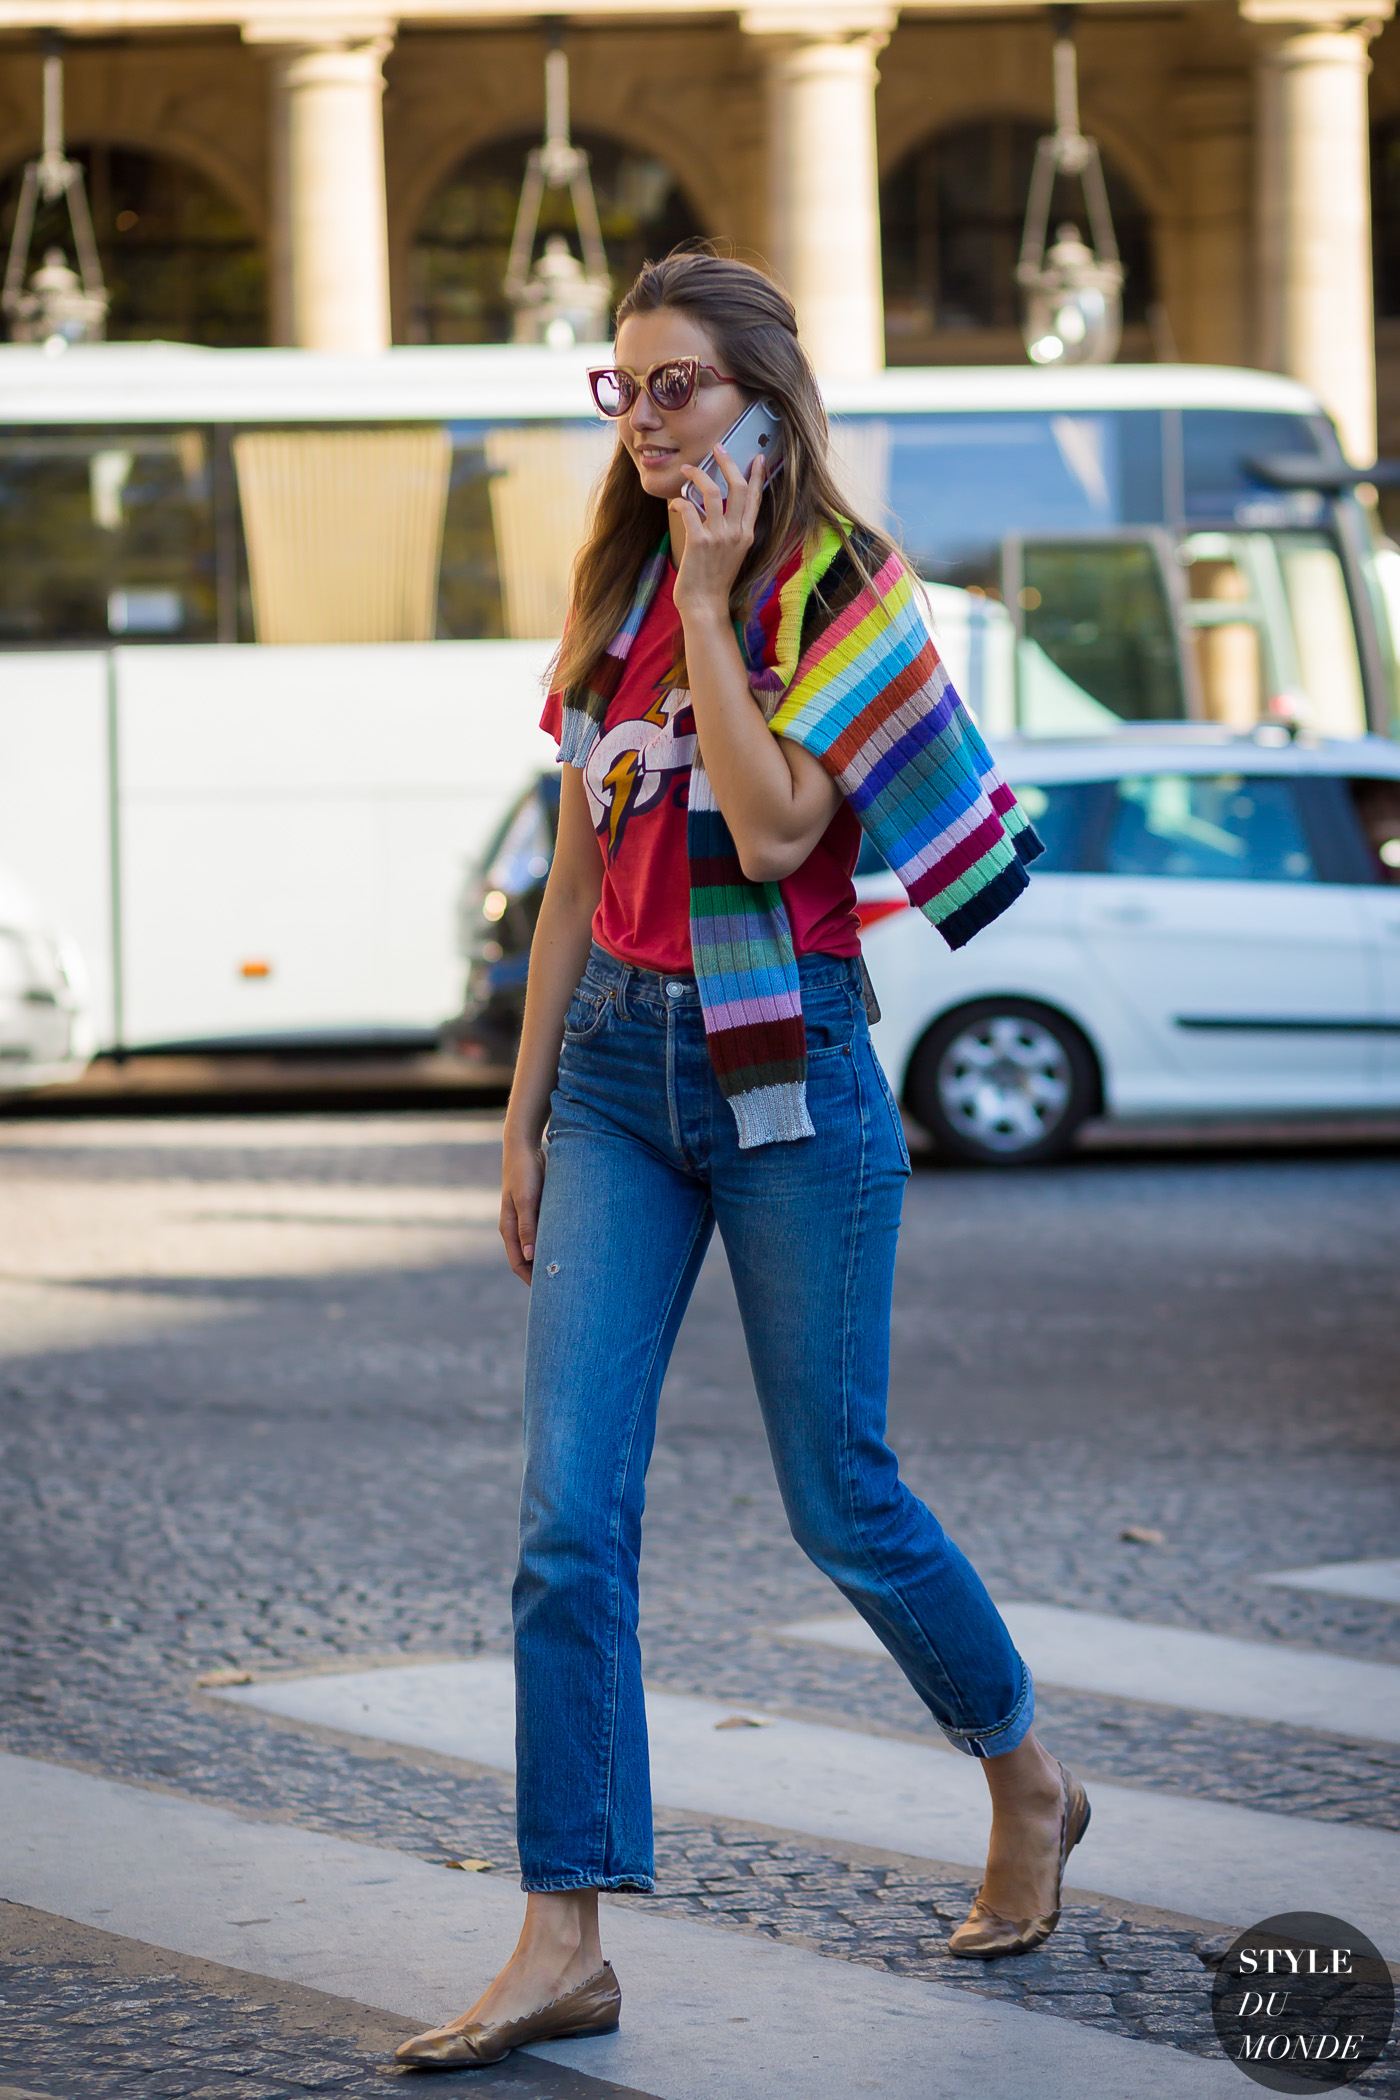 Andreea Diaconu Street Style Street Fashion Streetsnaps by STYLEDUMONDE Street Style Fashion Photography